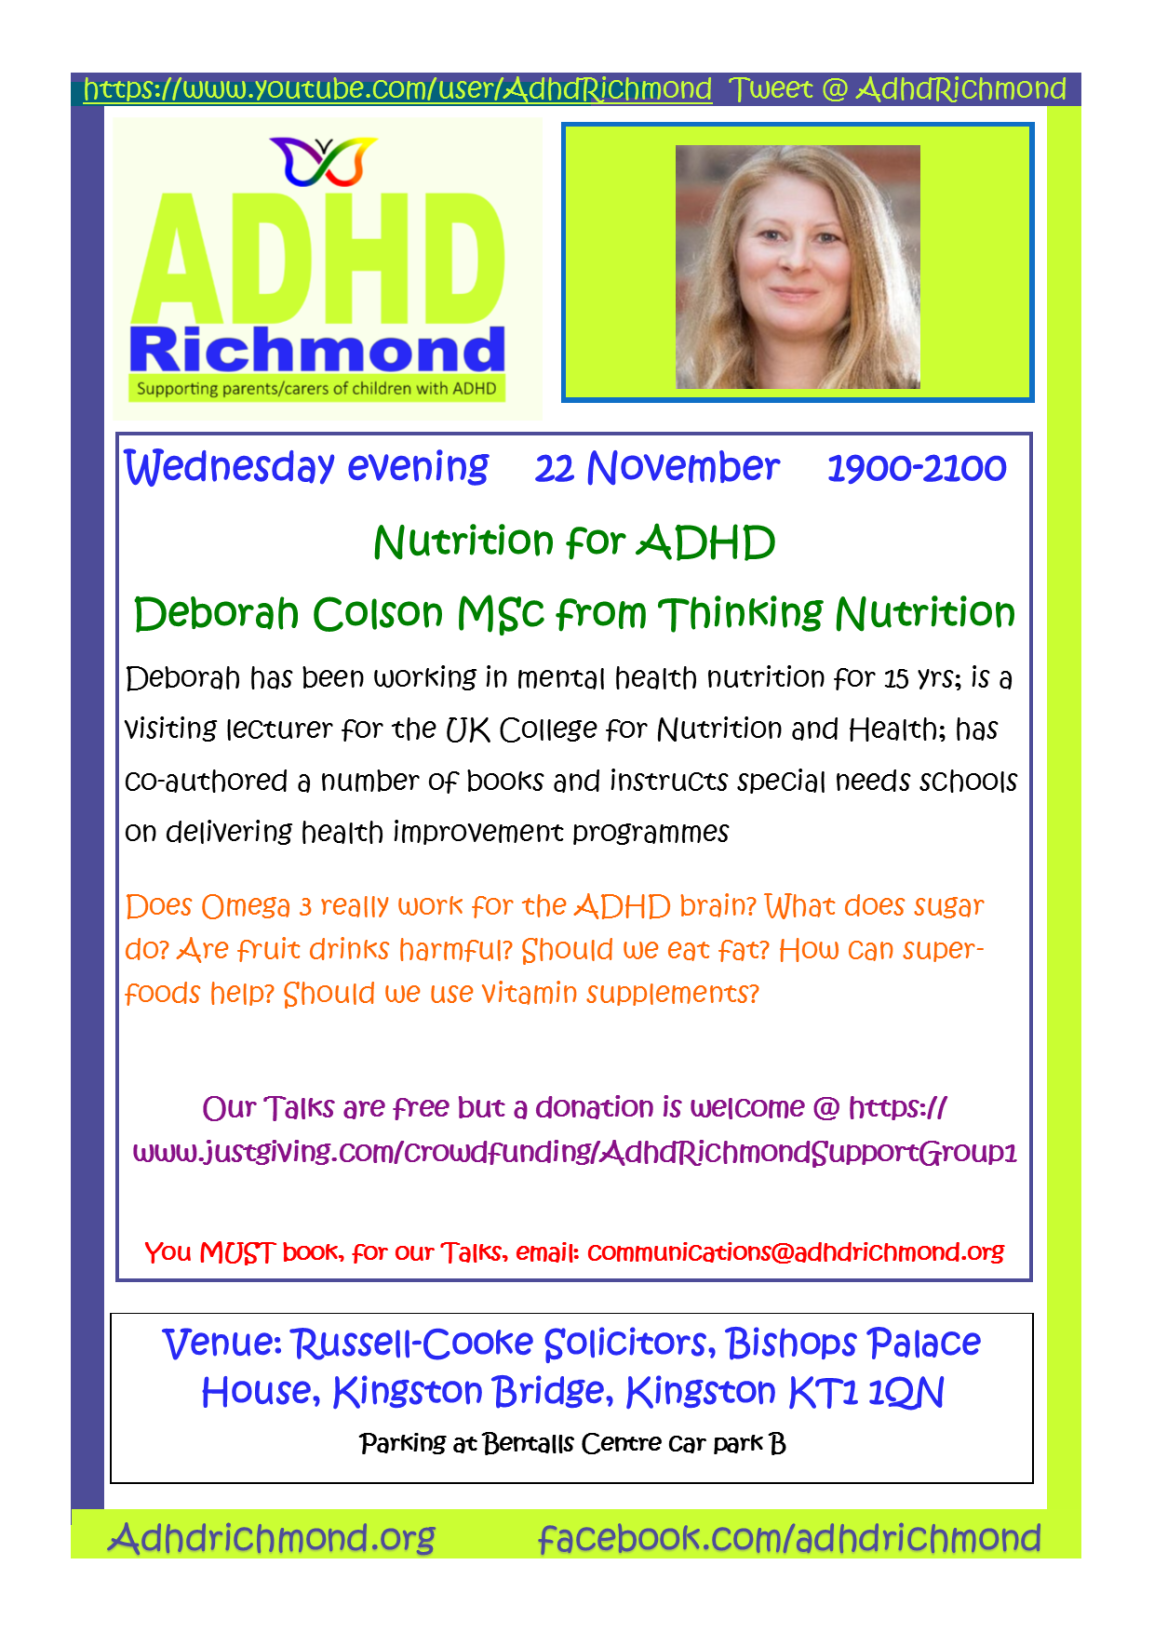 Nov 22 evening talk - Deborah Colson